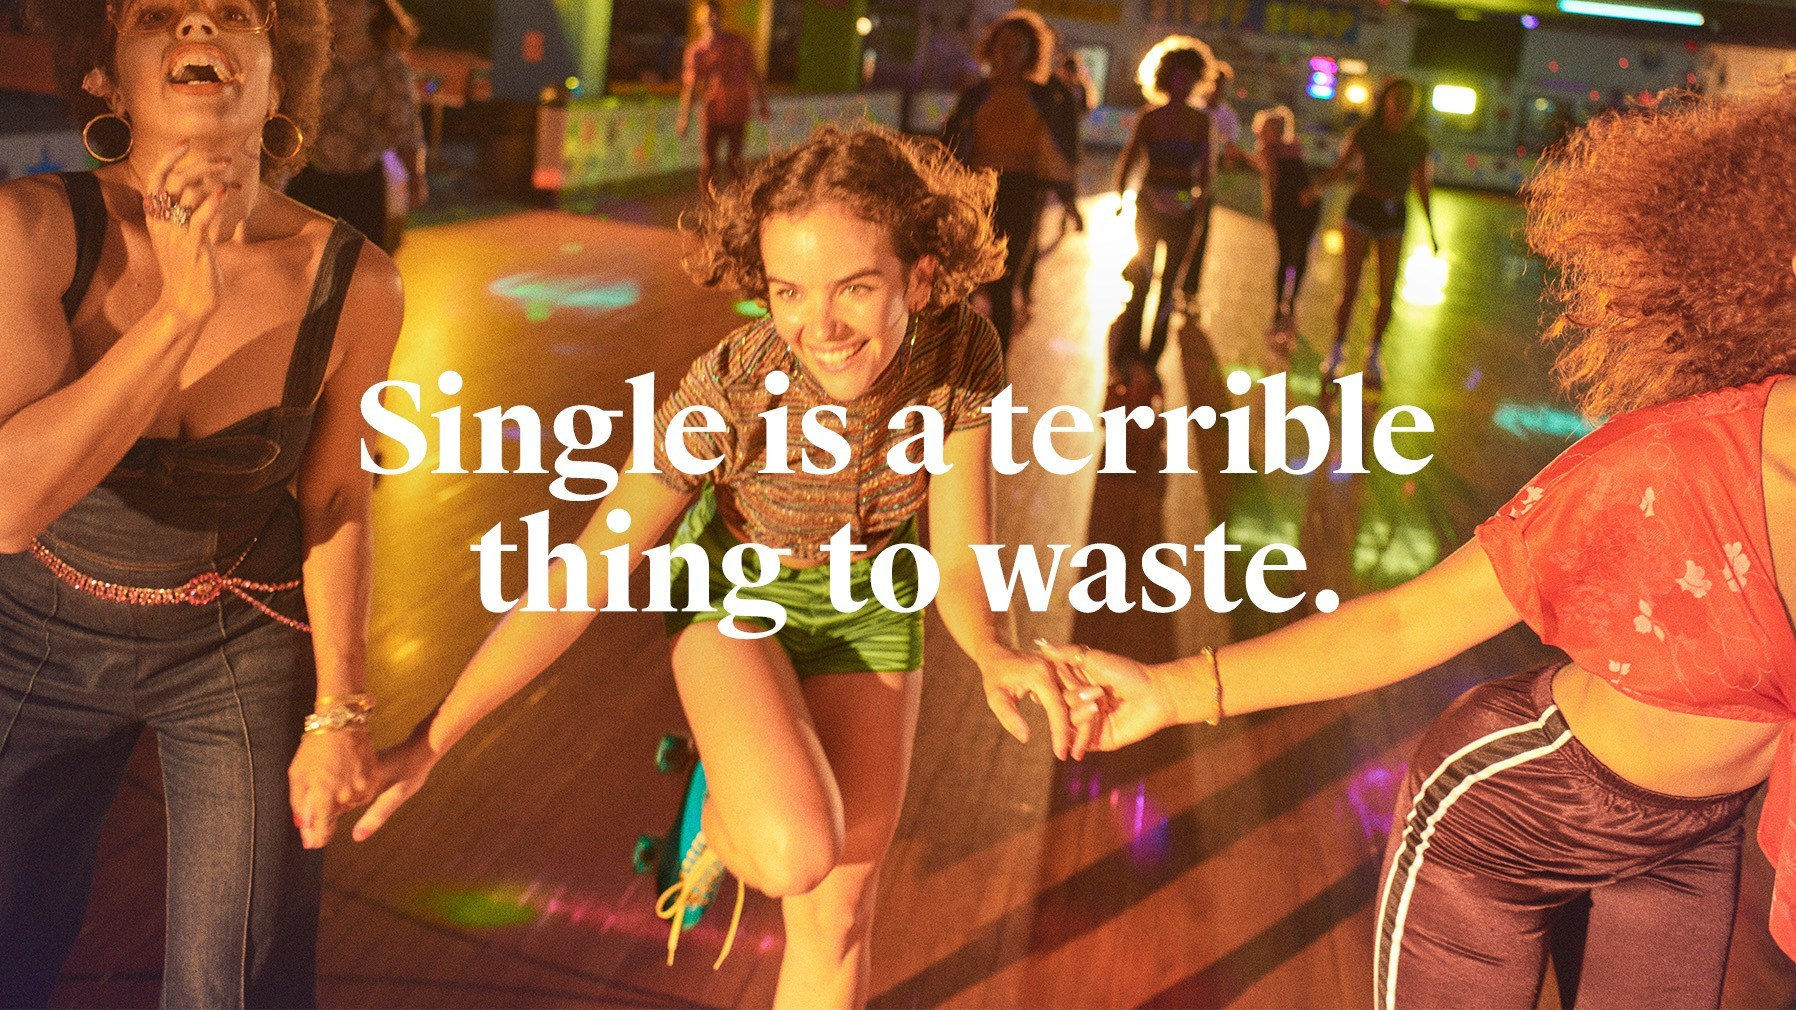 Tinder Single, Not Sorry campaign - Fonts In Use